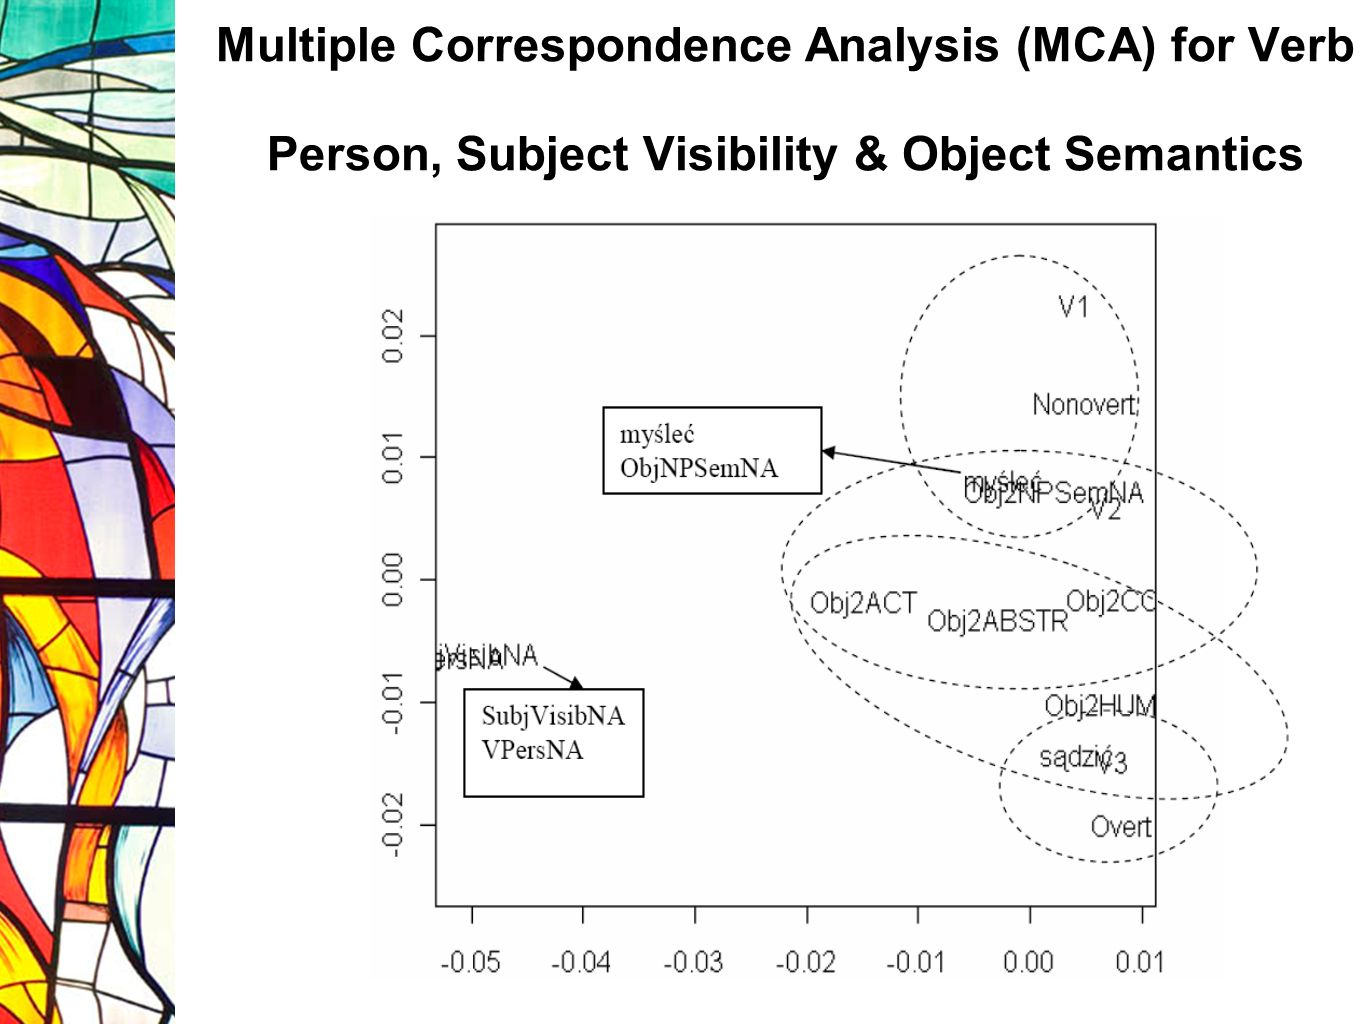 Multiple Correspondence Analysis (MCA) for Verb Person, Subject Visibility & Object Semantics